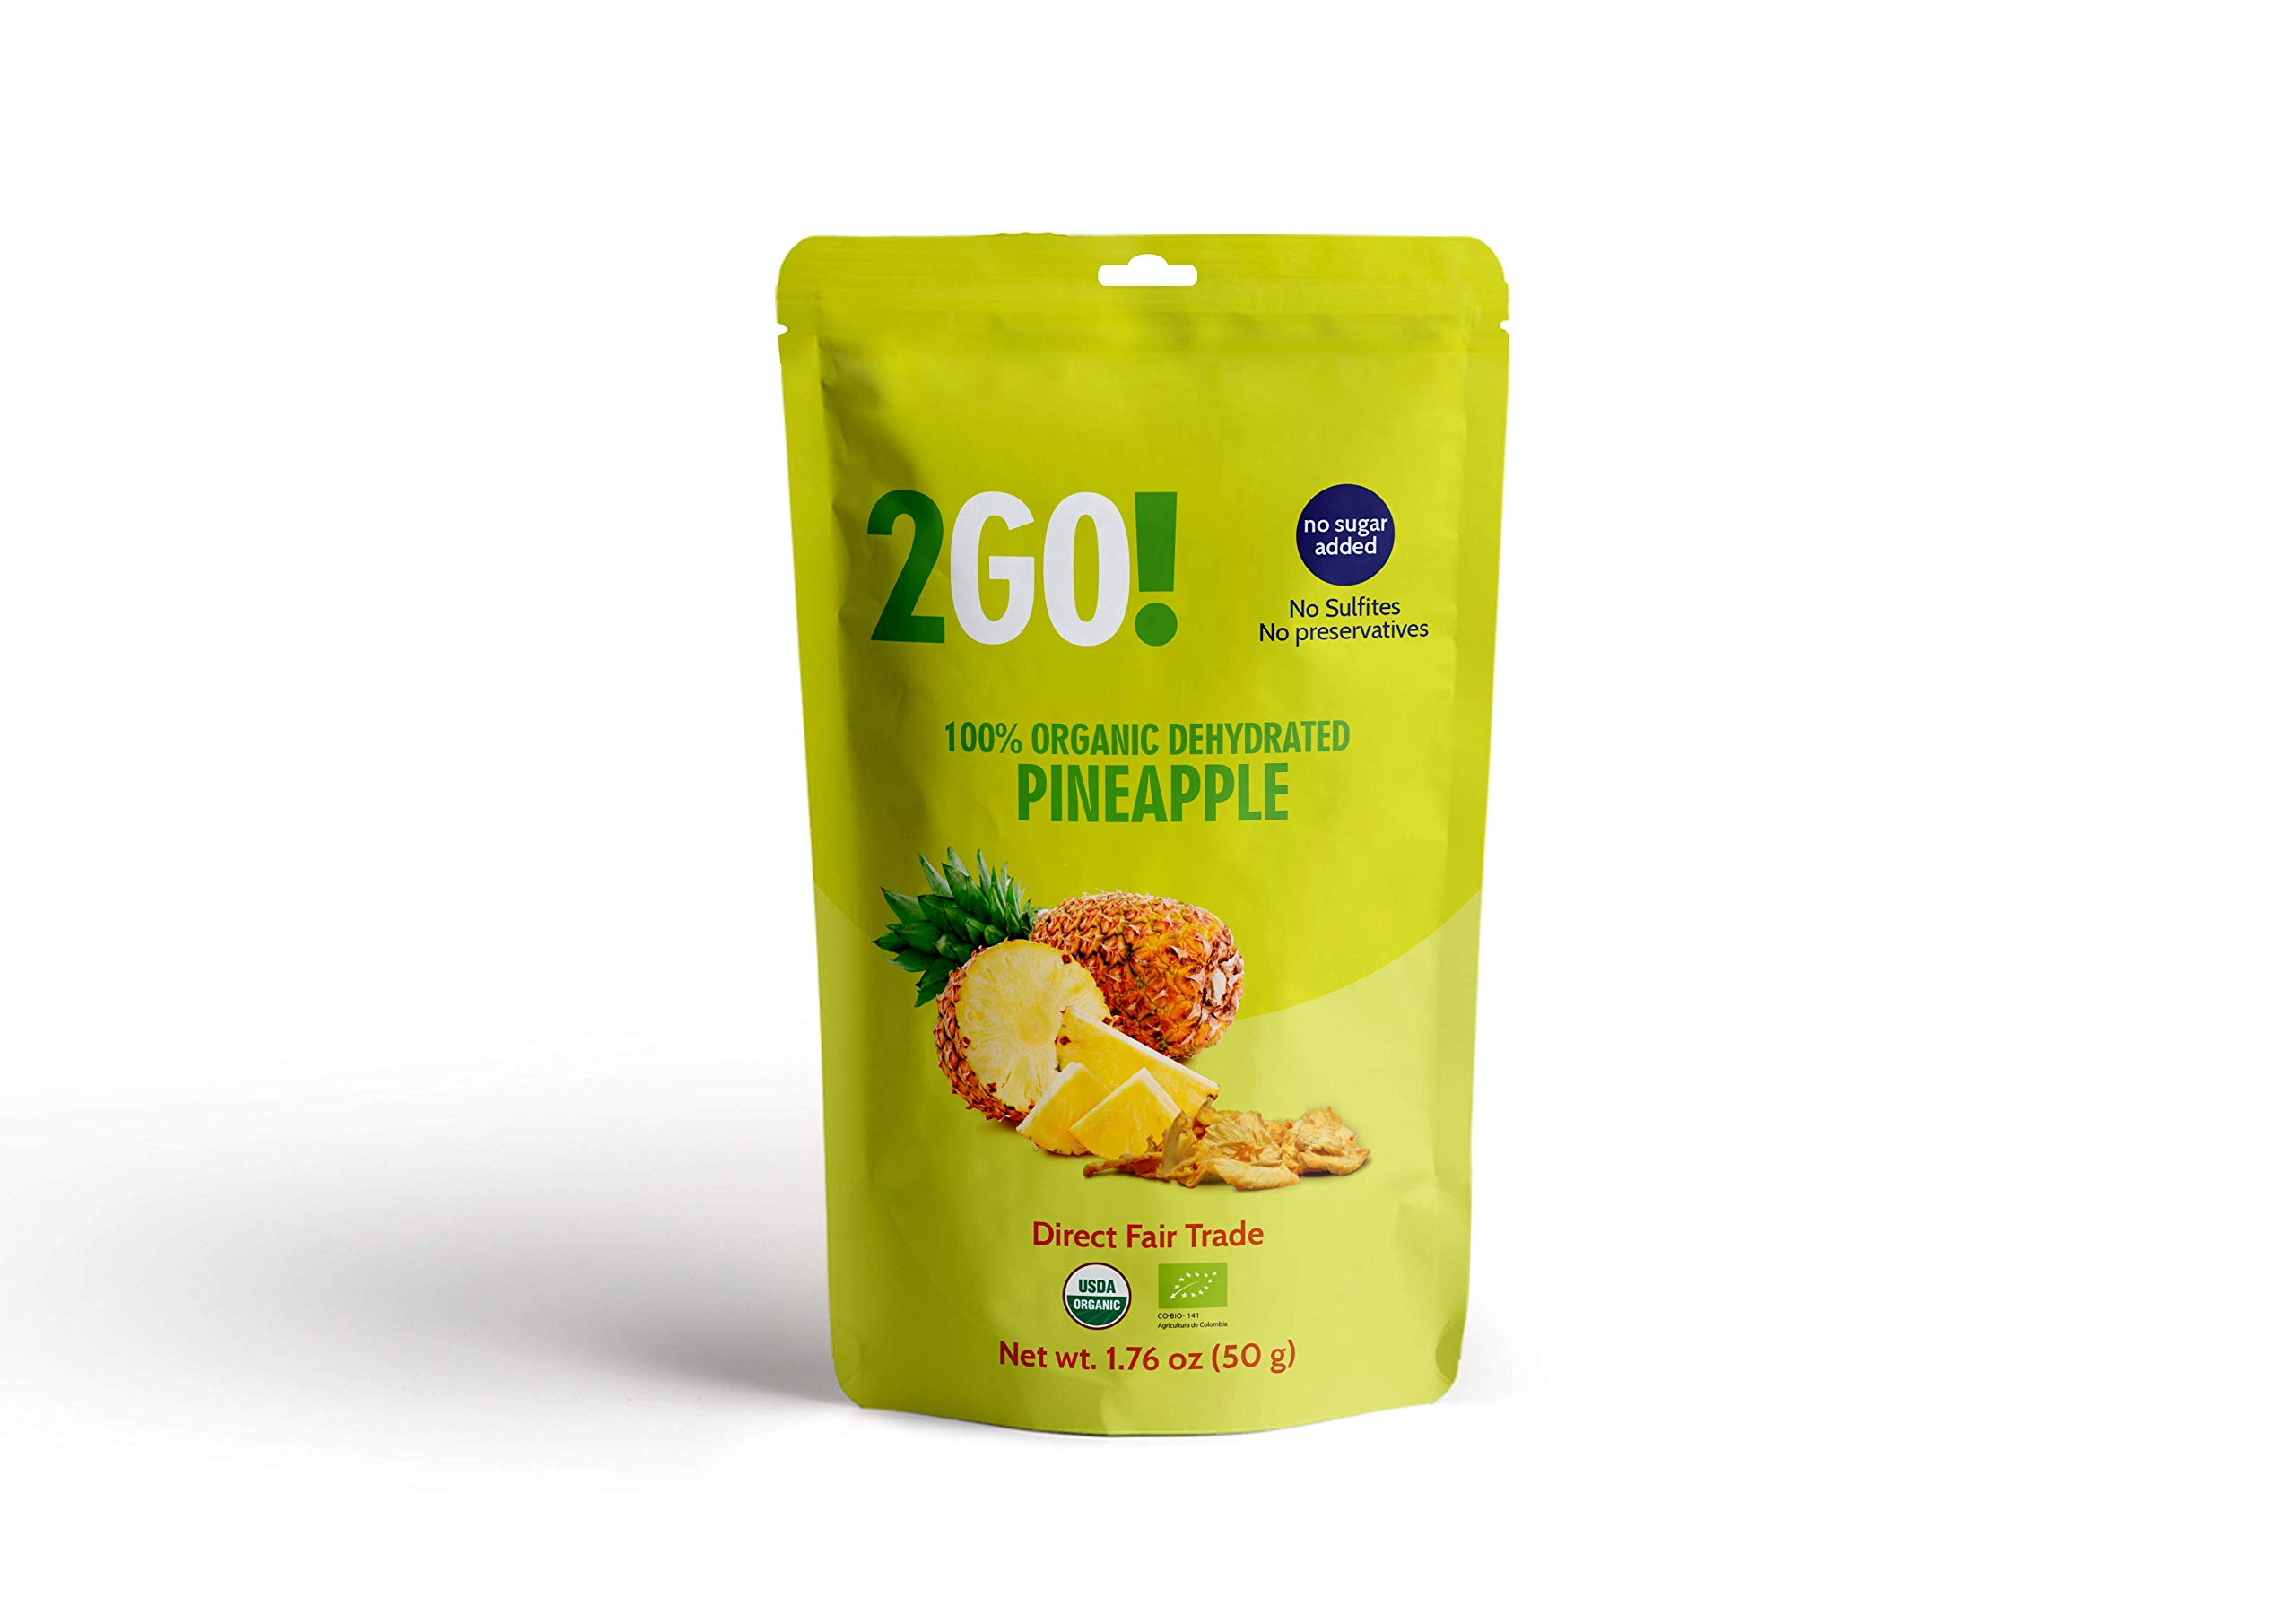 2Go! Organic, Dried Pineapple Slices - 1.76 oz (Pack of 6) - No Sugar Added - All-Natural Pineapples - Raw - Direct Fair Trade Fruit - from Colombia by 2GO!